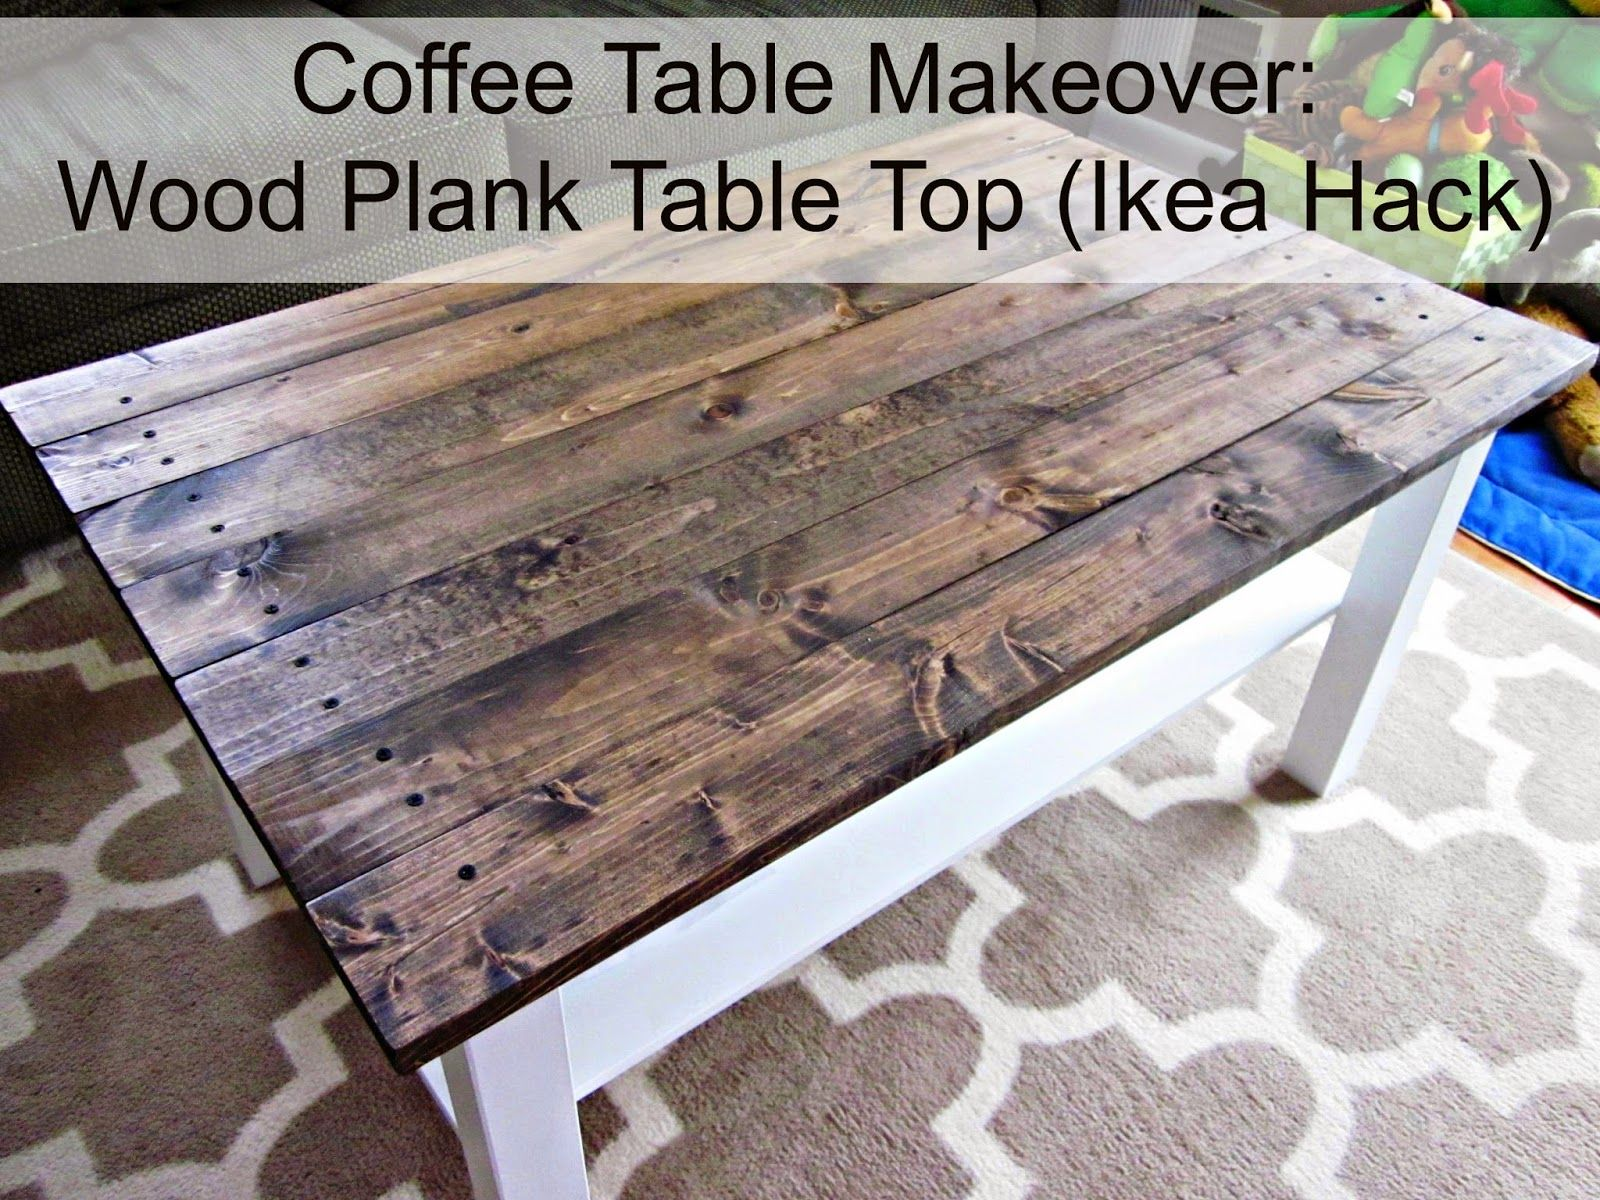 It S A Long Story Coffee Table Makeover Wood Plank Table Top Ikea Hack Diy Table Makeover Coffee Table Wood Coffee Table Makeover [ 1200 x 1600 Pixel ]